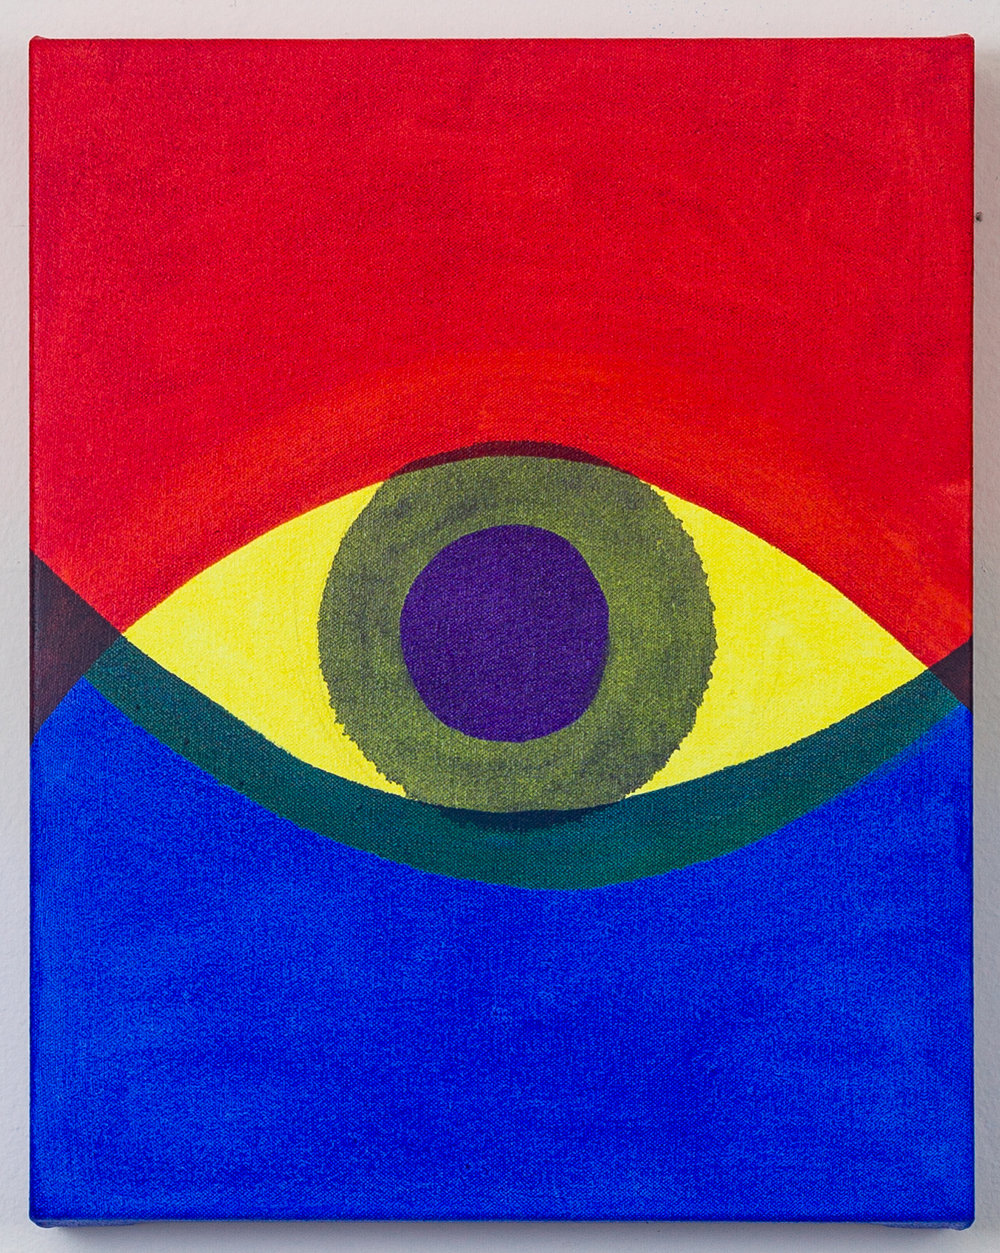 Untitled (Eye)